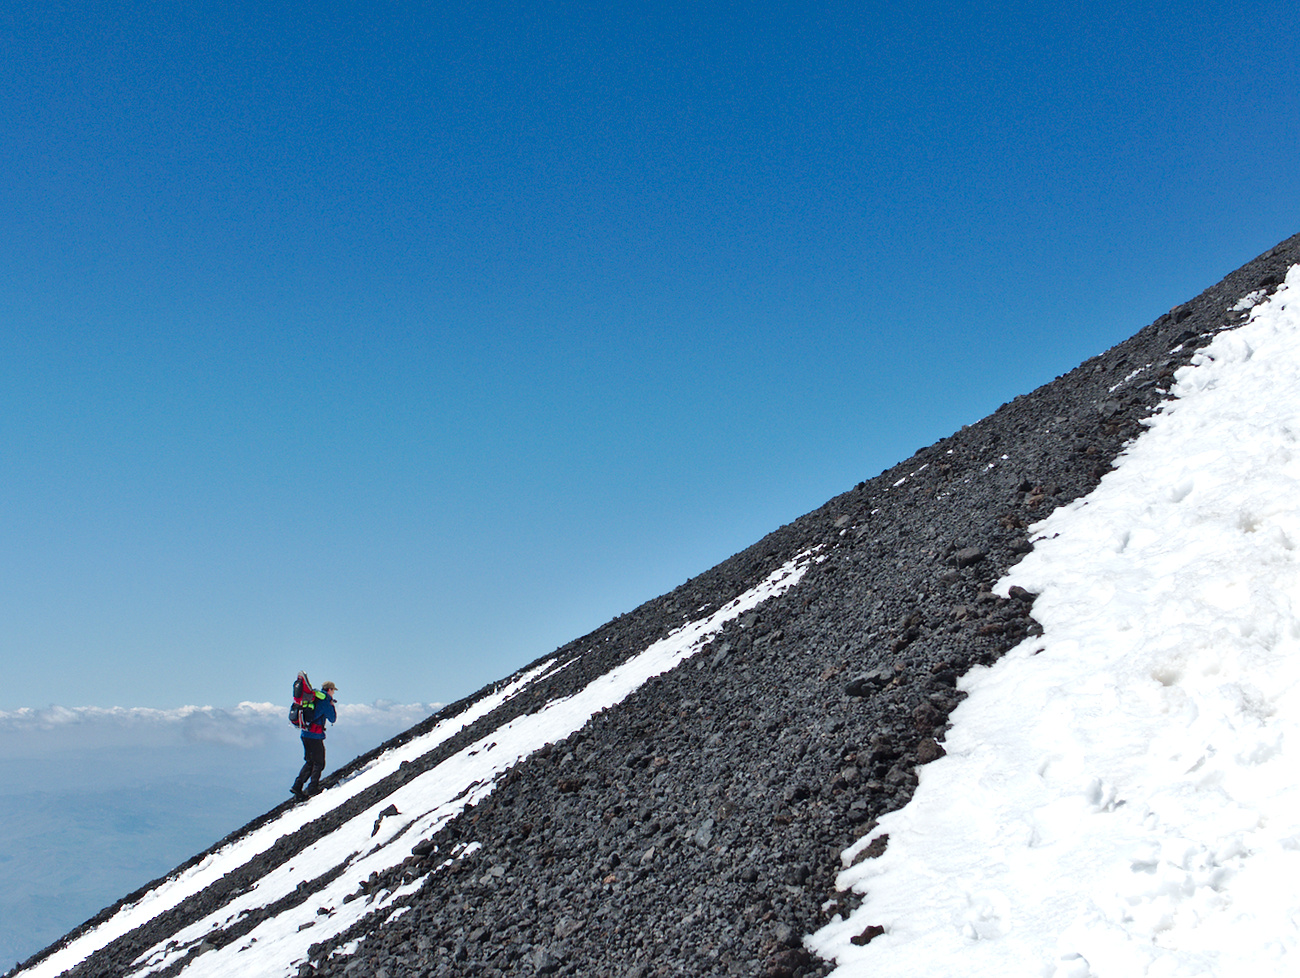 A tourist climbing one of the craters of the Etna vulcan, Sicily, Italy.